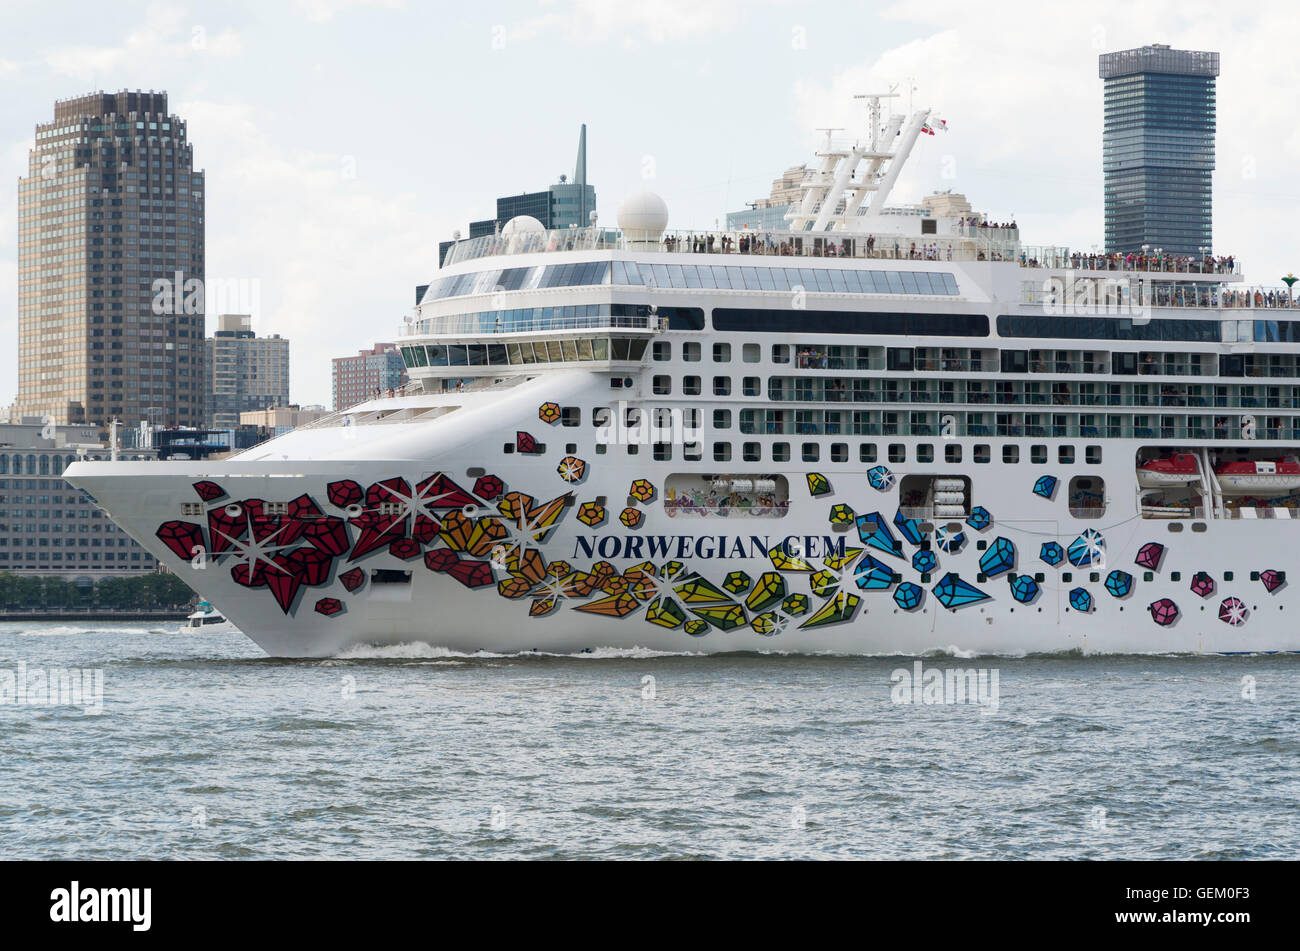 Norwegian Gem By Norwegian Cruise Line Cruise Ship Sailing Out Of - Cruises out of nyc